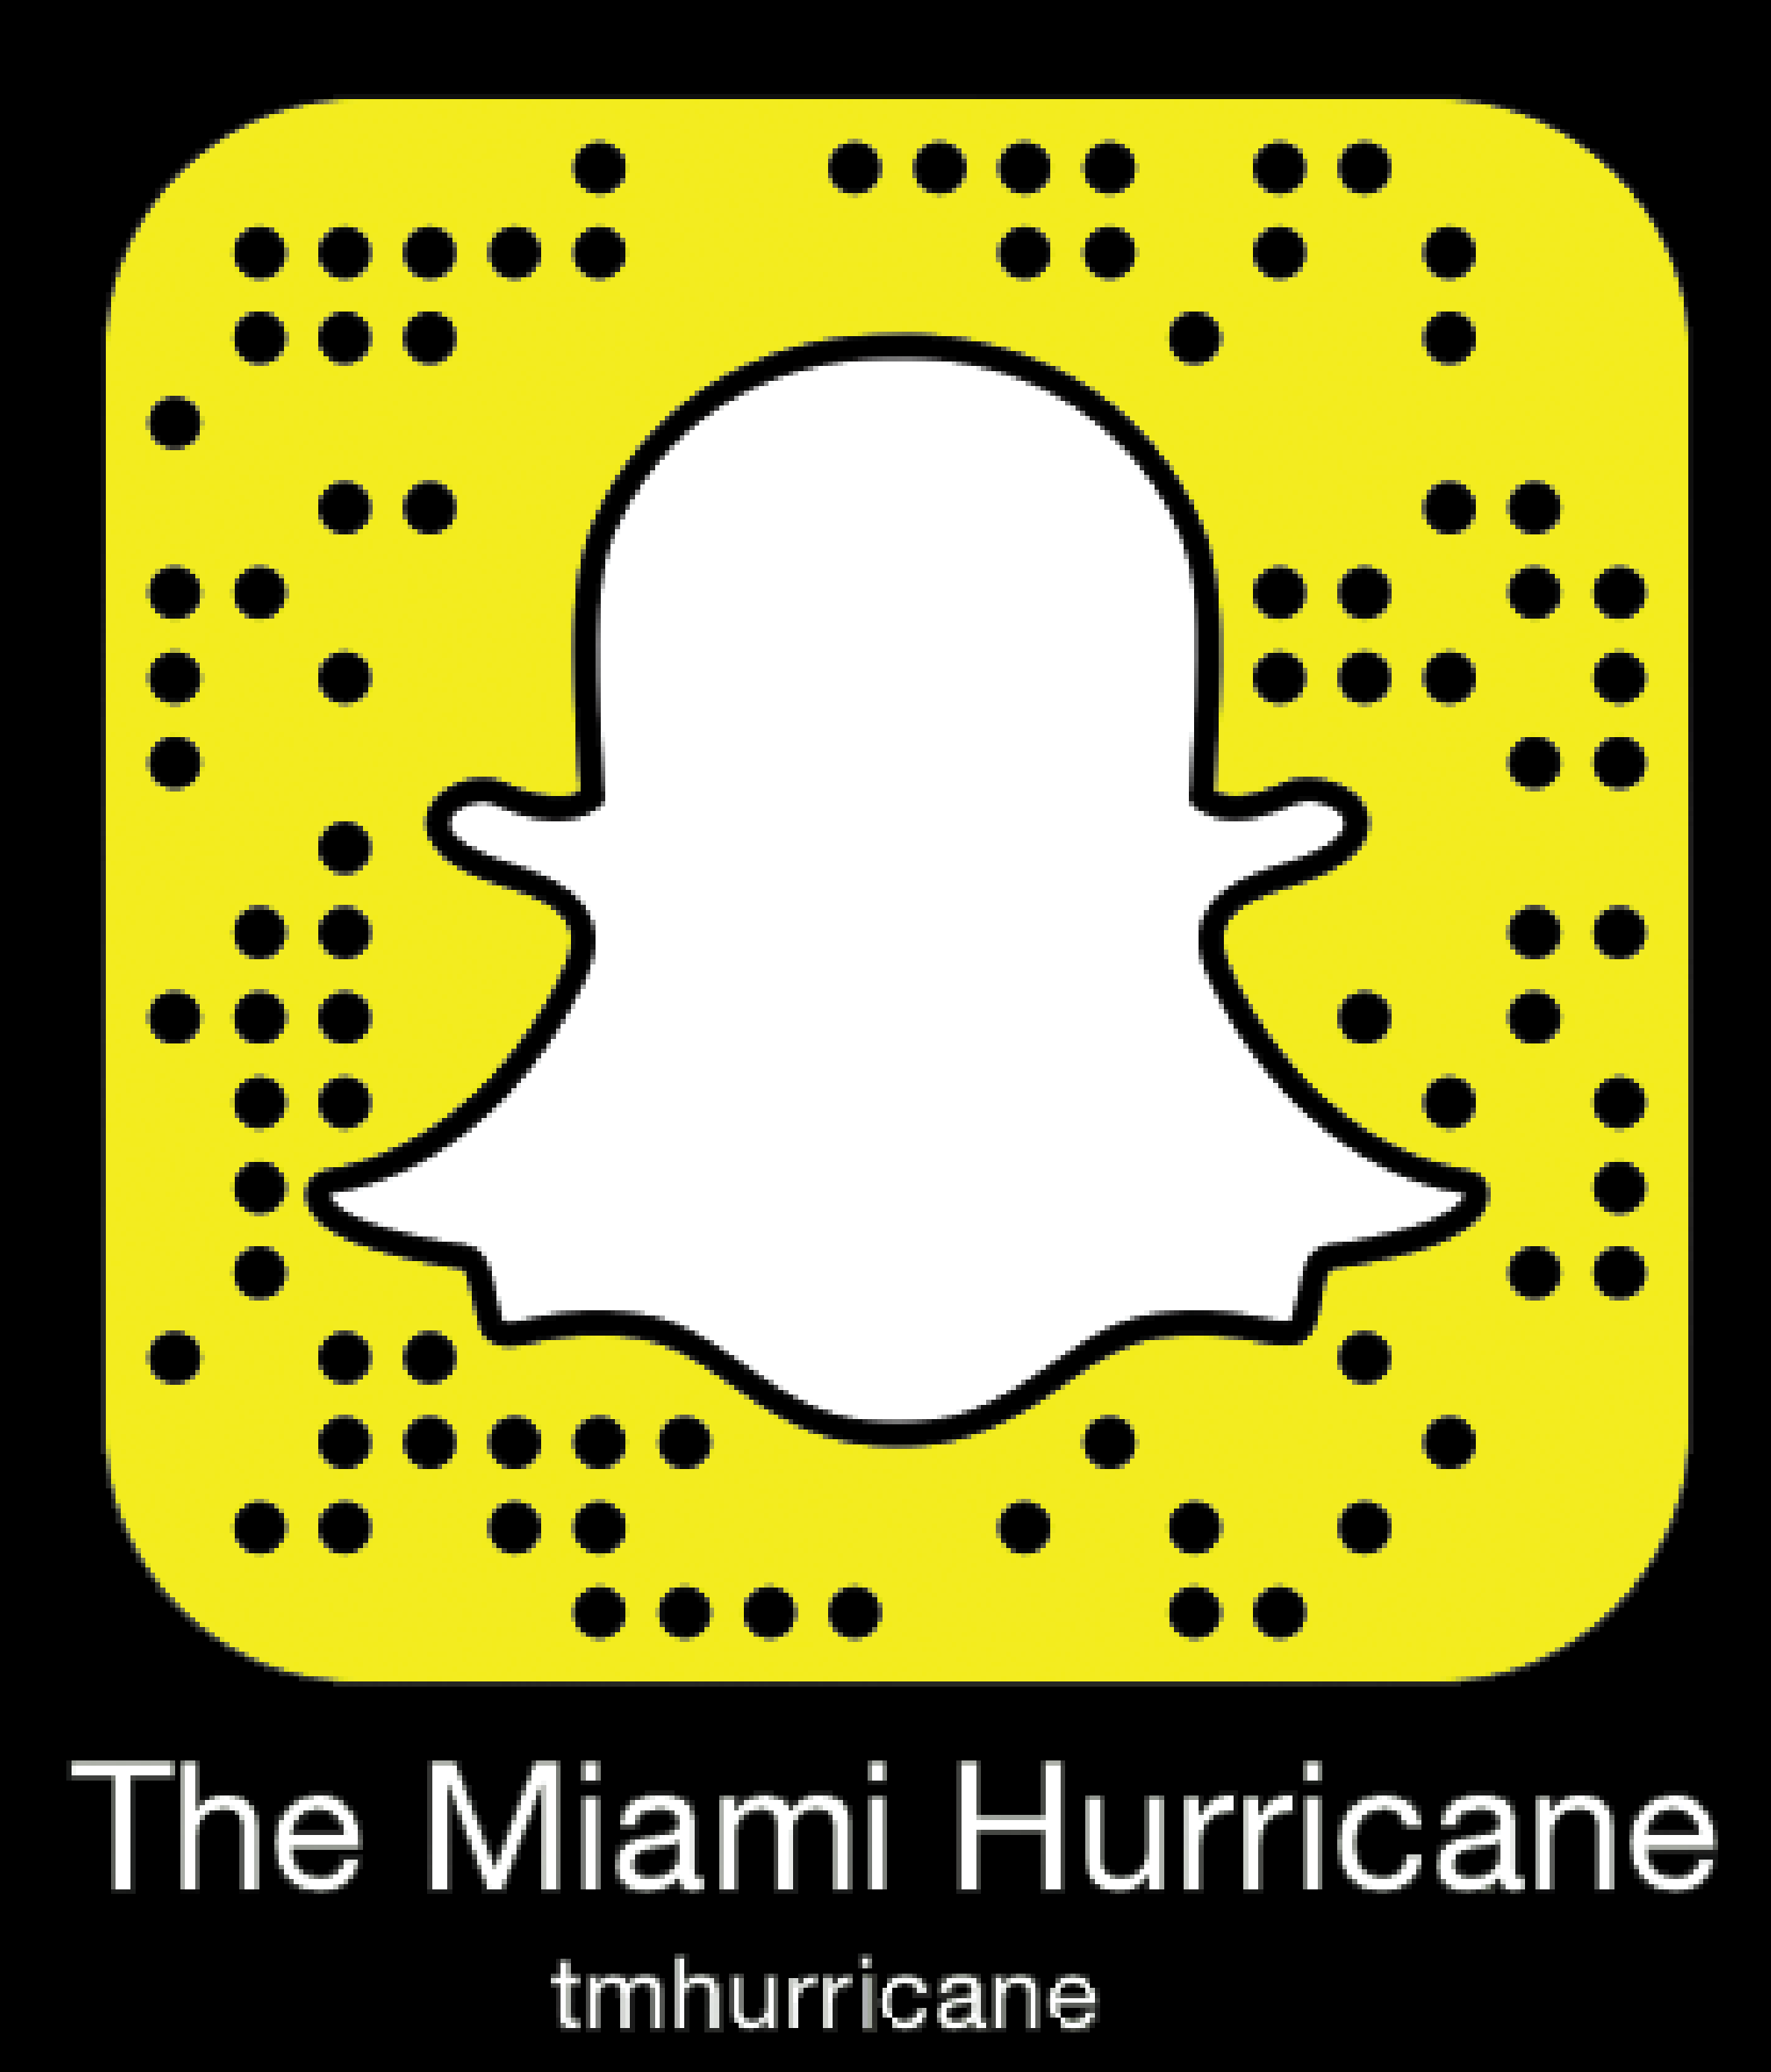 http://www.themiamihurricane.com/wp-content/uploads/2015/09/insta-snap-01-e1442517510738.png on Snapchat